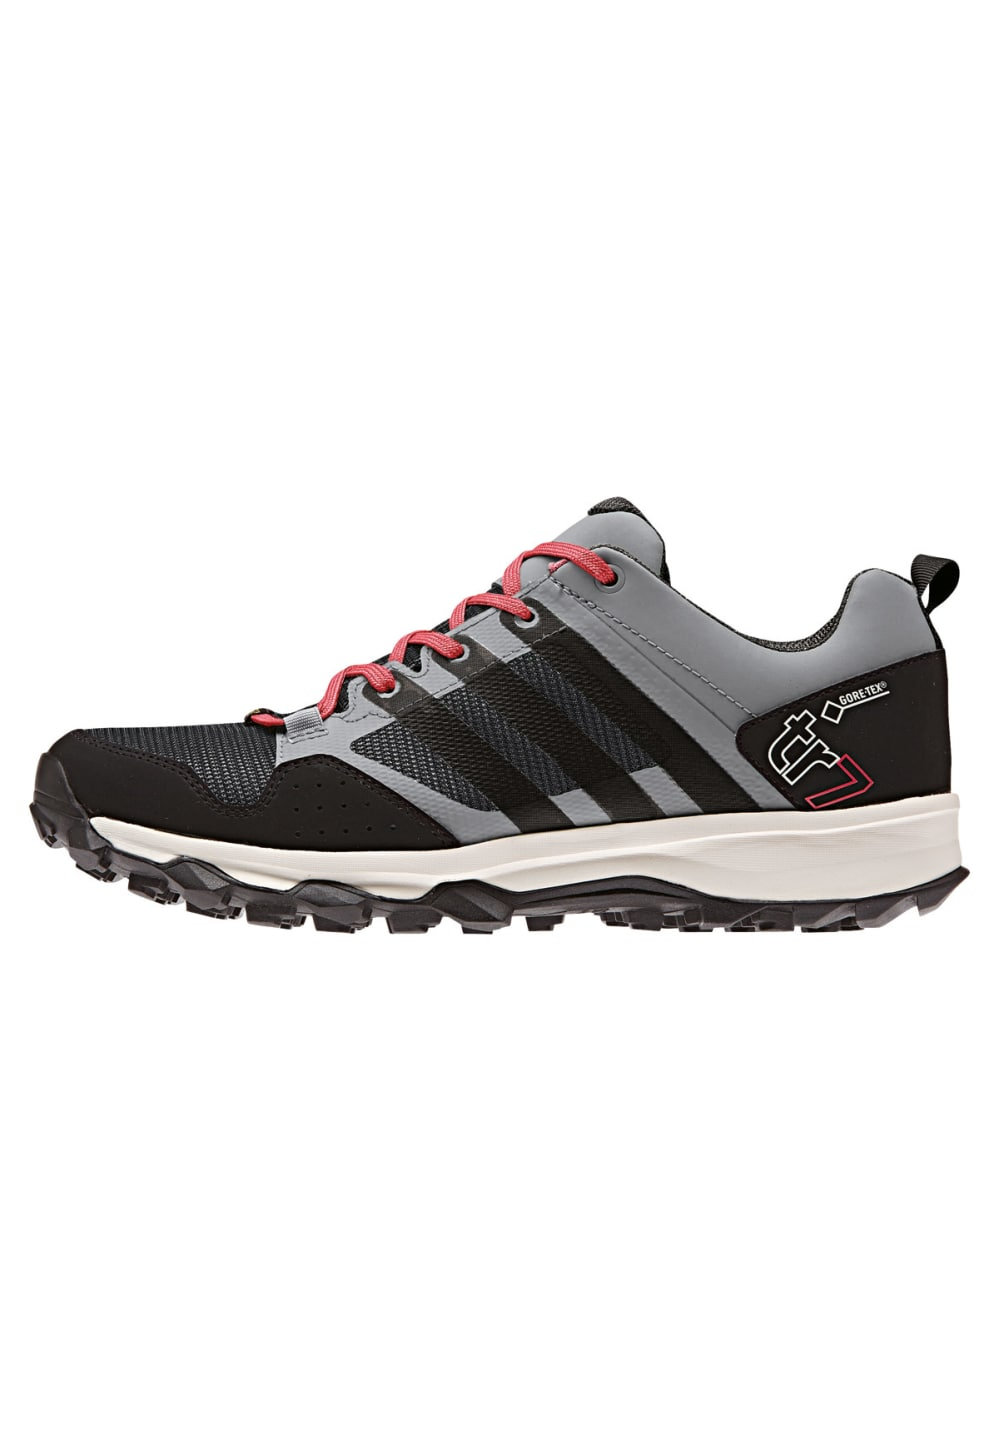 new concept 40fd6 4a176 ... adidas Kanadia 7 TR GTX - Running shoes for Women - Grey. Back to  Overview. 1 2. Previous